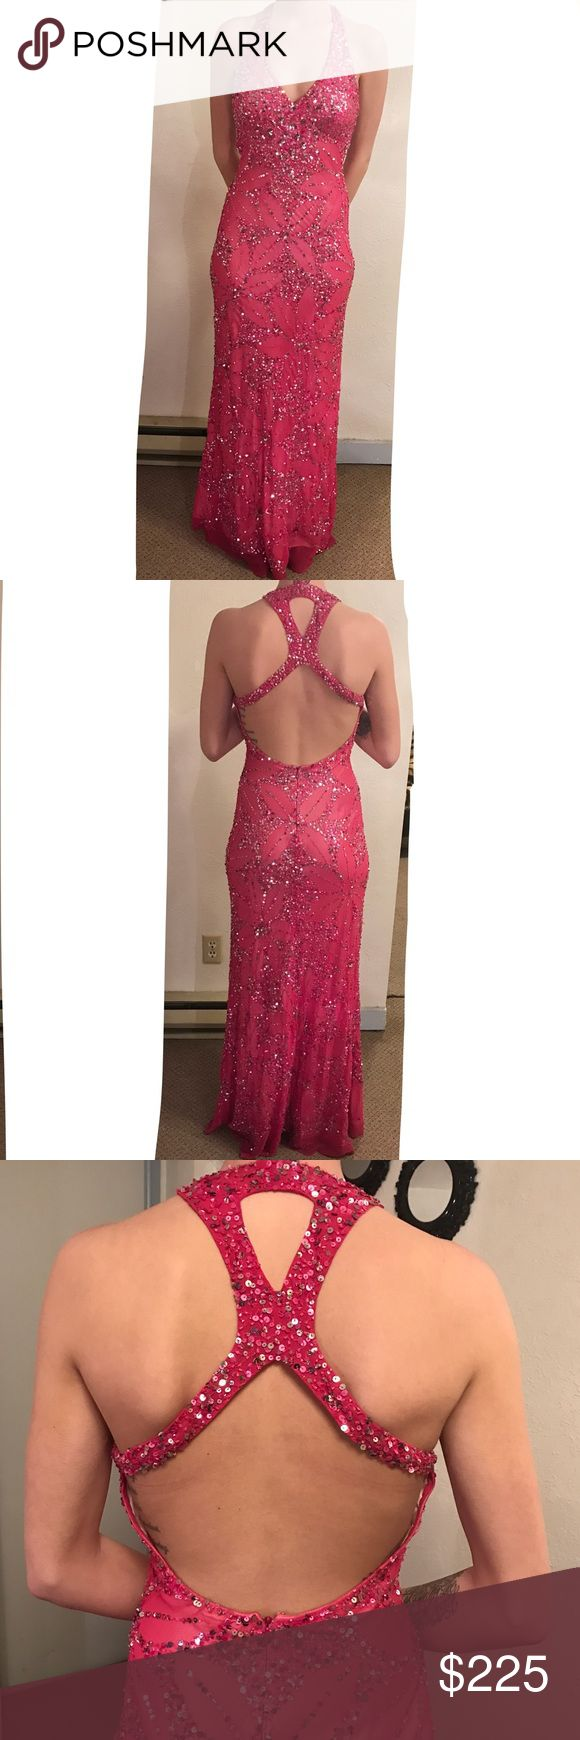 Beautiful Sequin Pink Prom Dress 💕🎀 Beautiful fully sequined pink prom dress, only worn once. It is size 2, and true to size but can always be hemmed to fit smaller. It's perfectly long, I am 5'8 and wearing 5 inch heels in this photo and it's still touching the floor so its perfect for tall and short girls ❤️ Like new, no snags, tears or problems. Very expensive so it's great quality, and condition ⭐️it also has push up bra pads sewed in, but can be removed with a snip of a thread ✨ Feel…